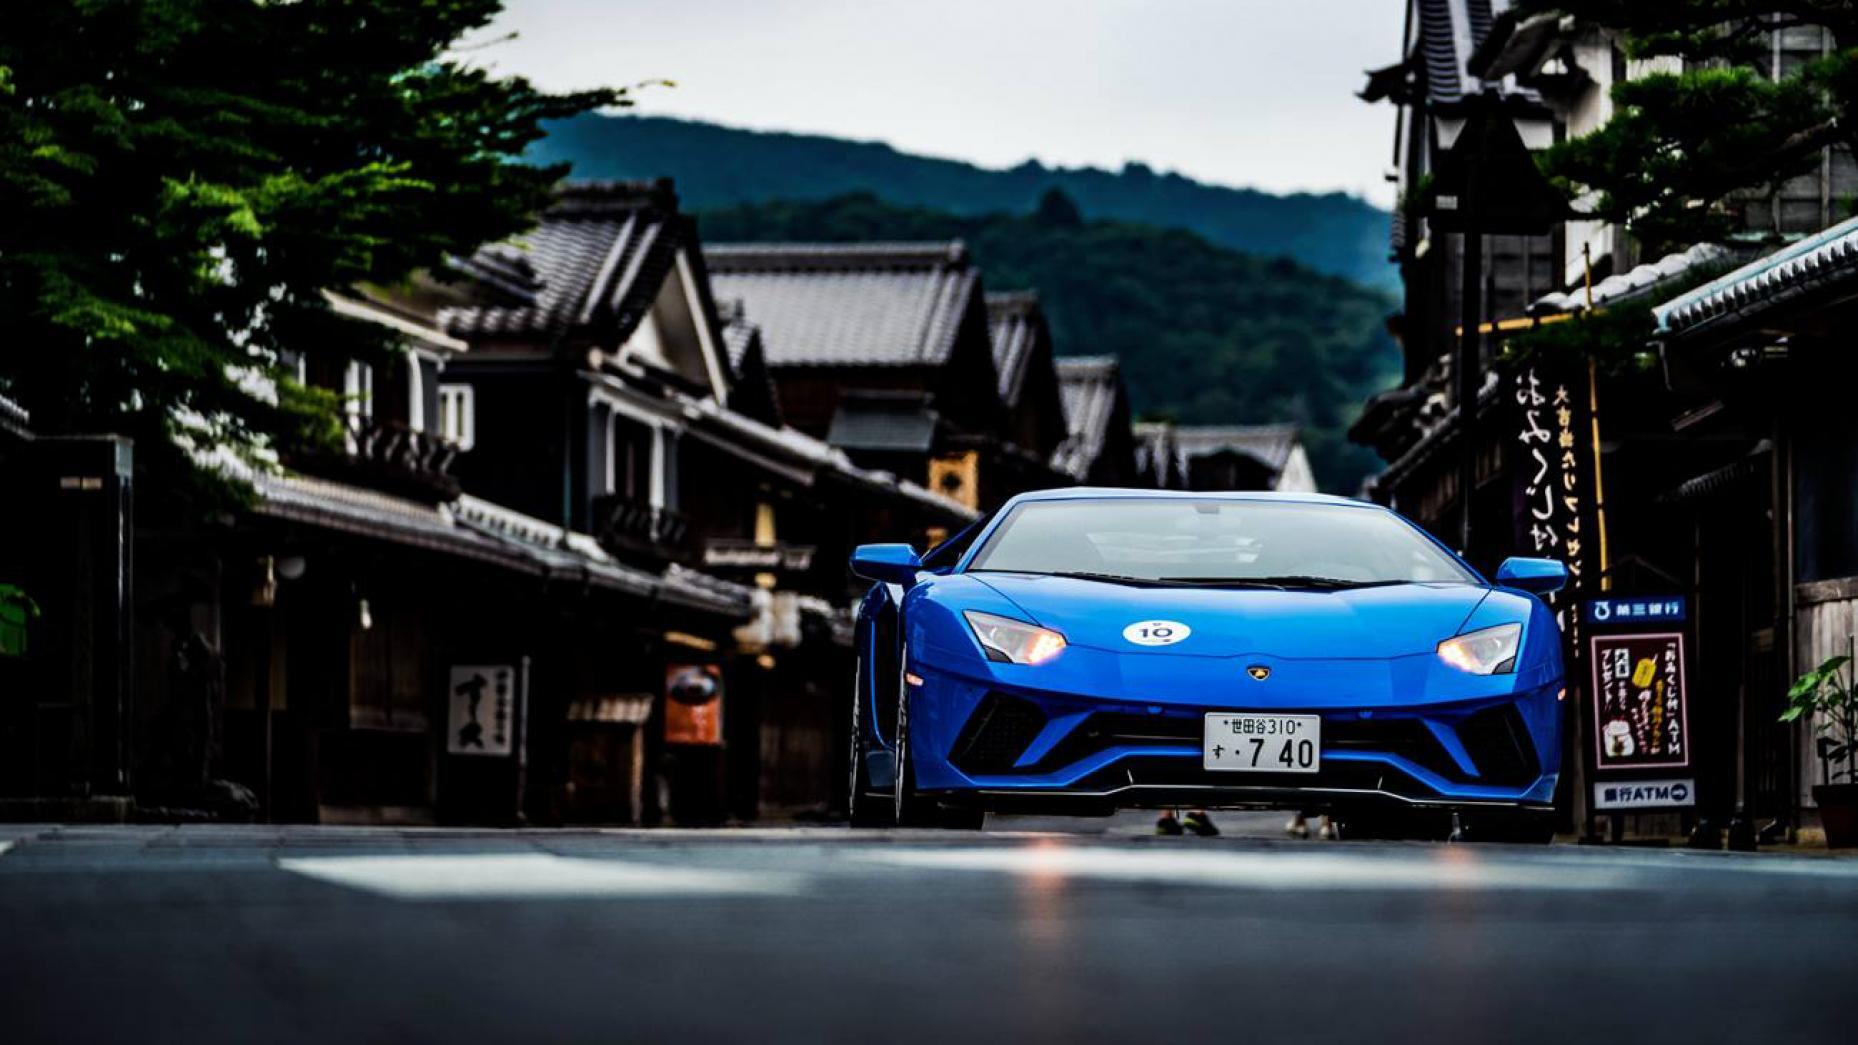 Gallery: many lovely Lamborghinis go on tour